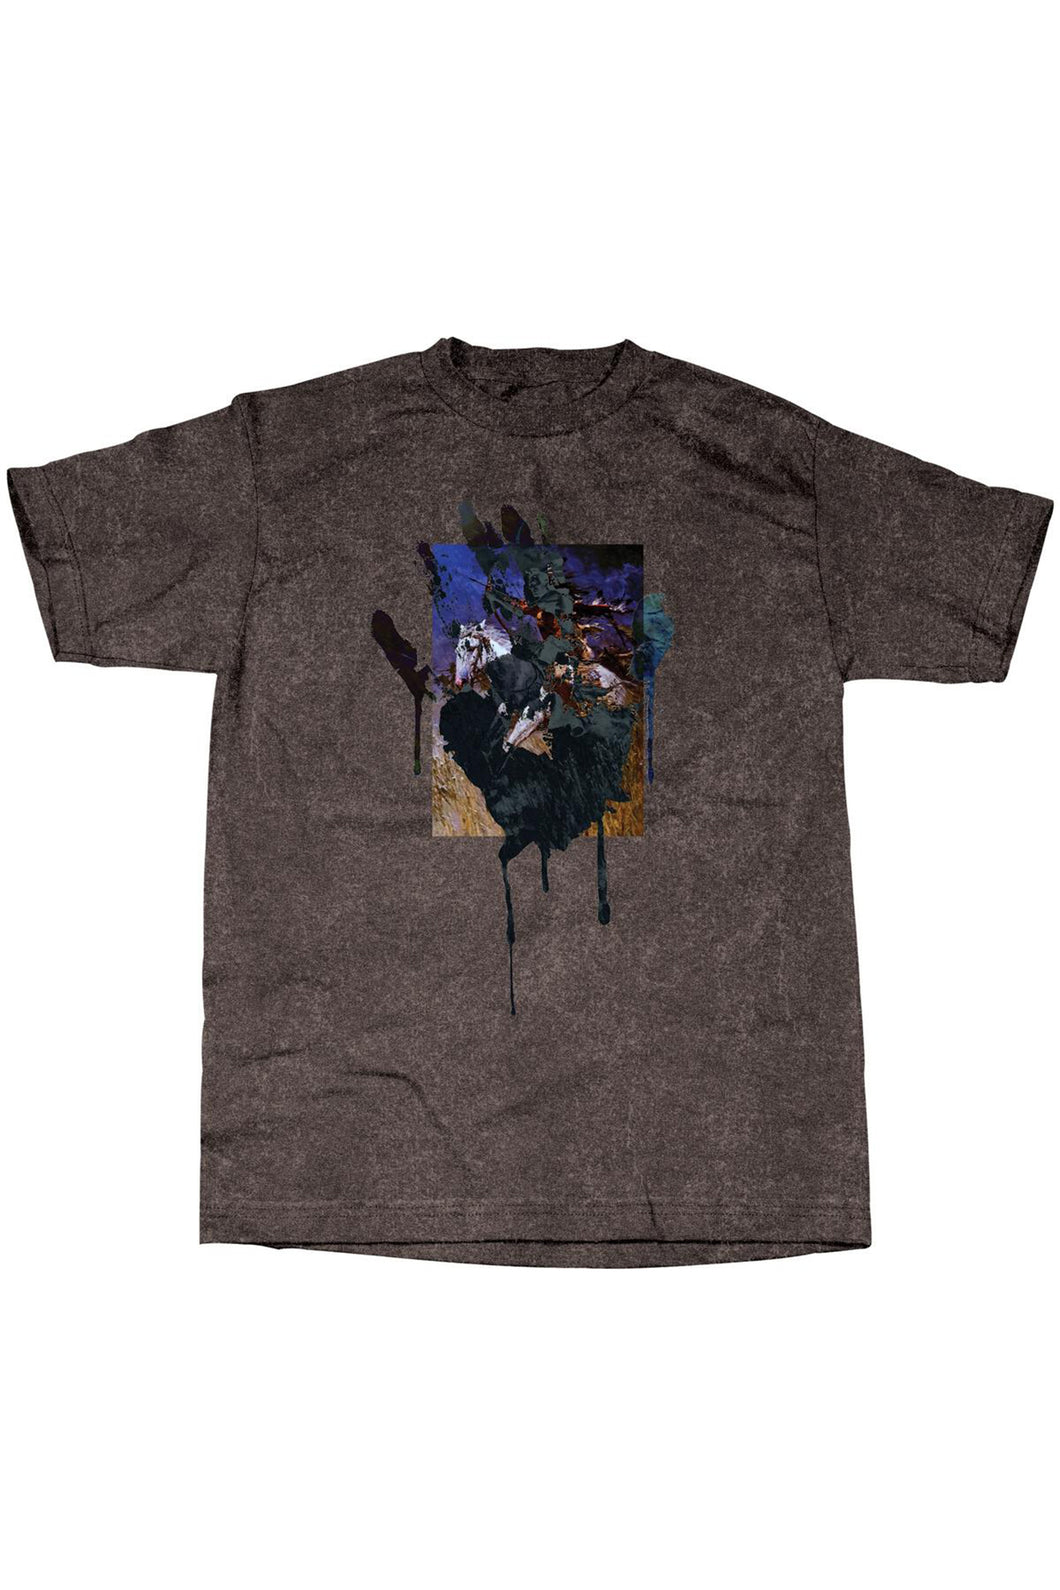 Riders On The Storm S/S Tee